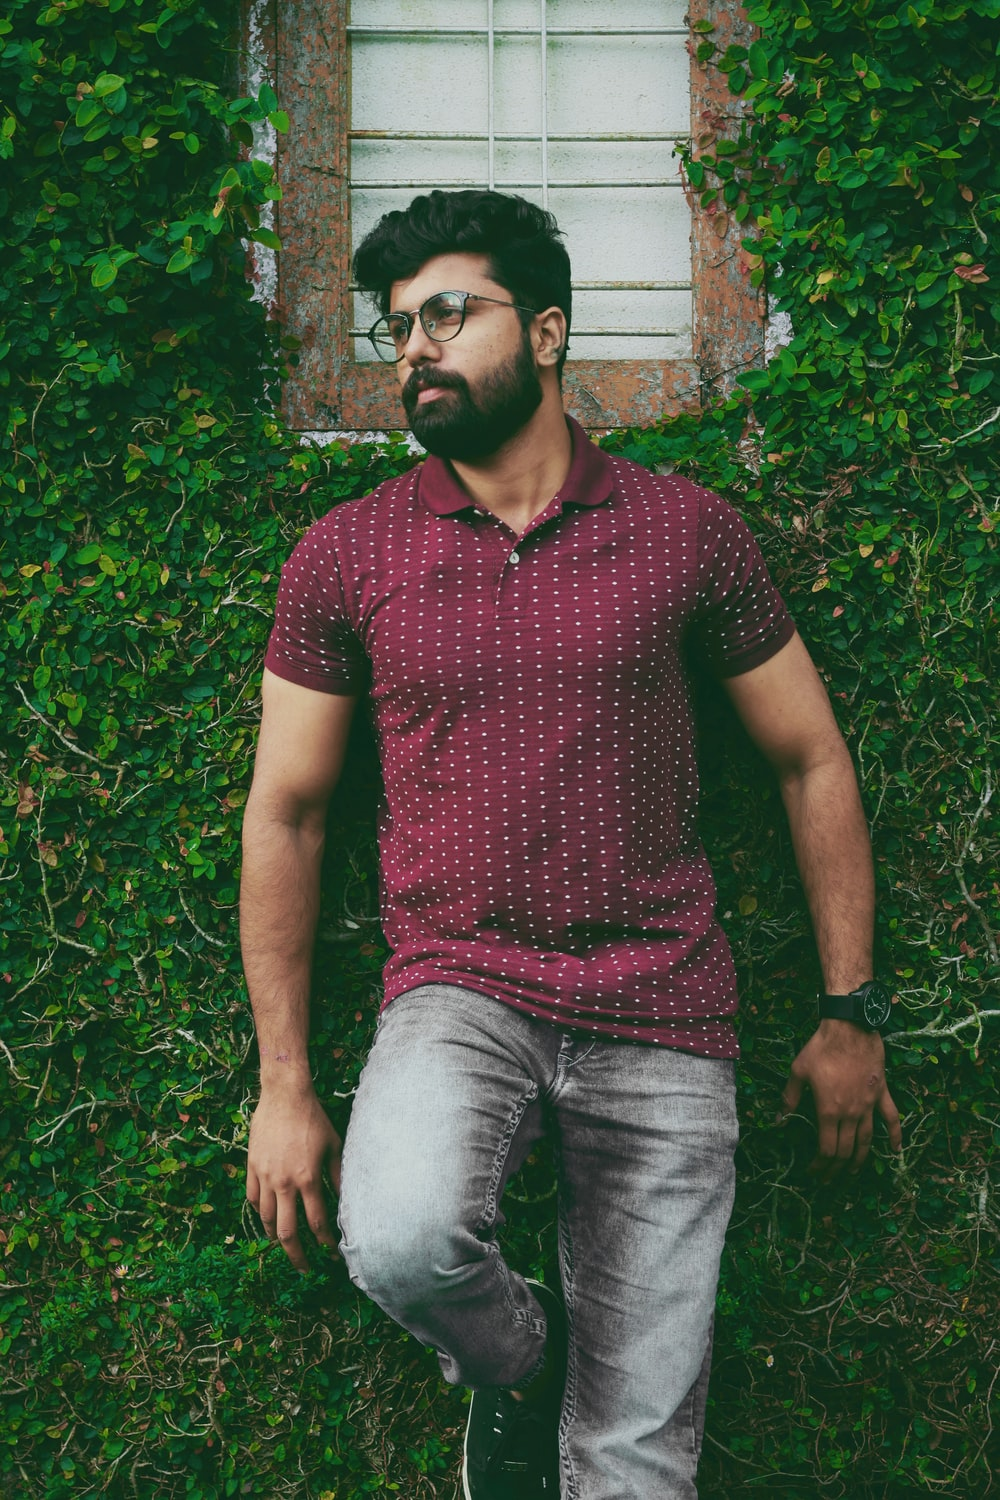 man in maroon polo shirt leaning on wall and green plants